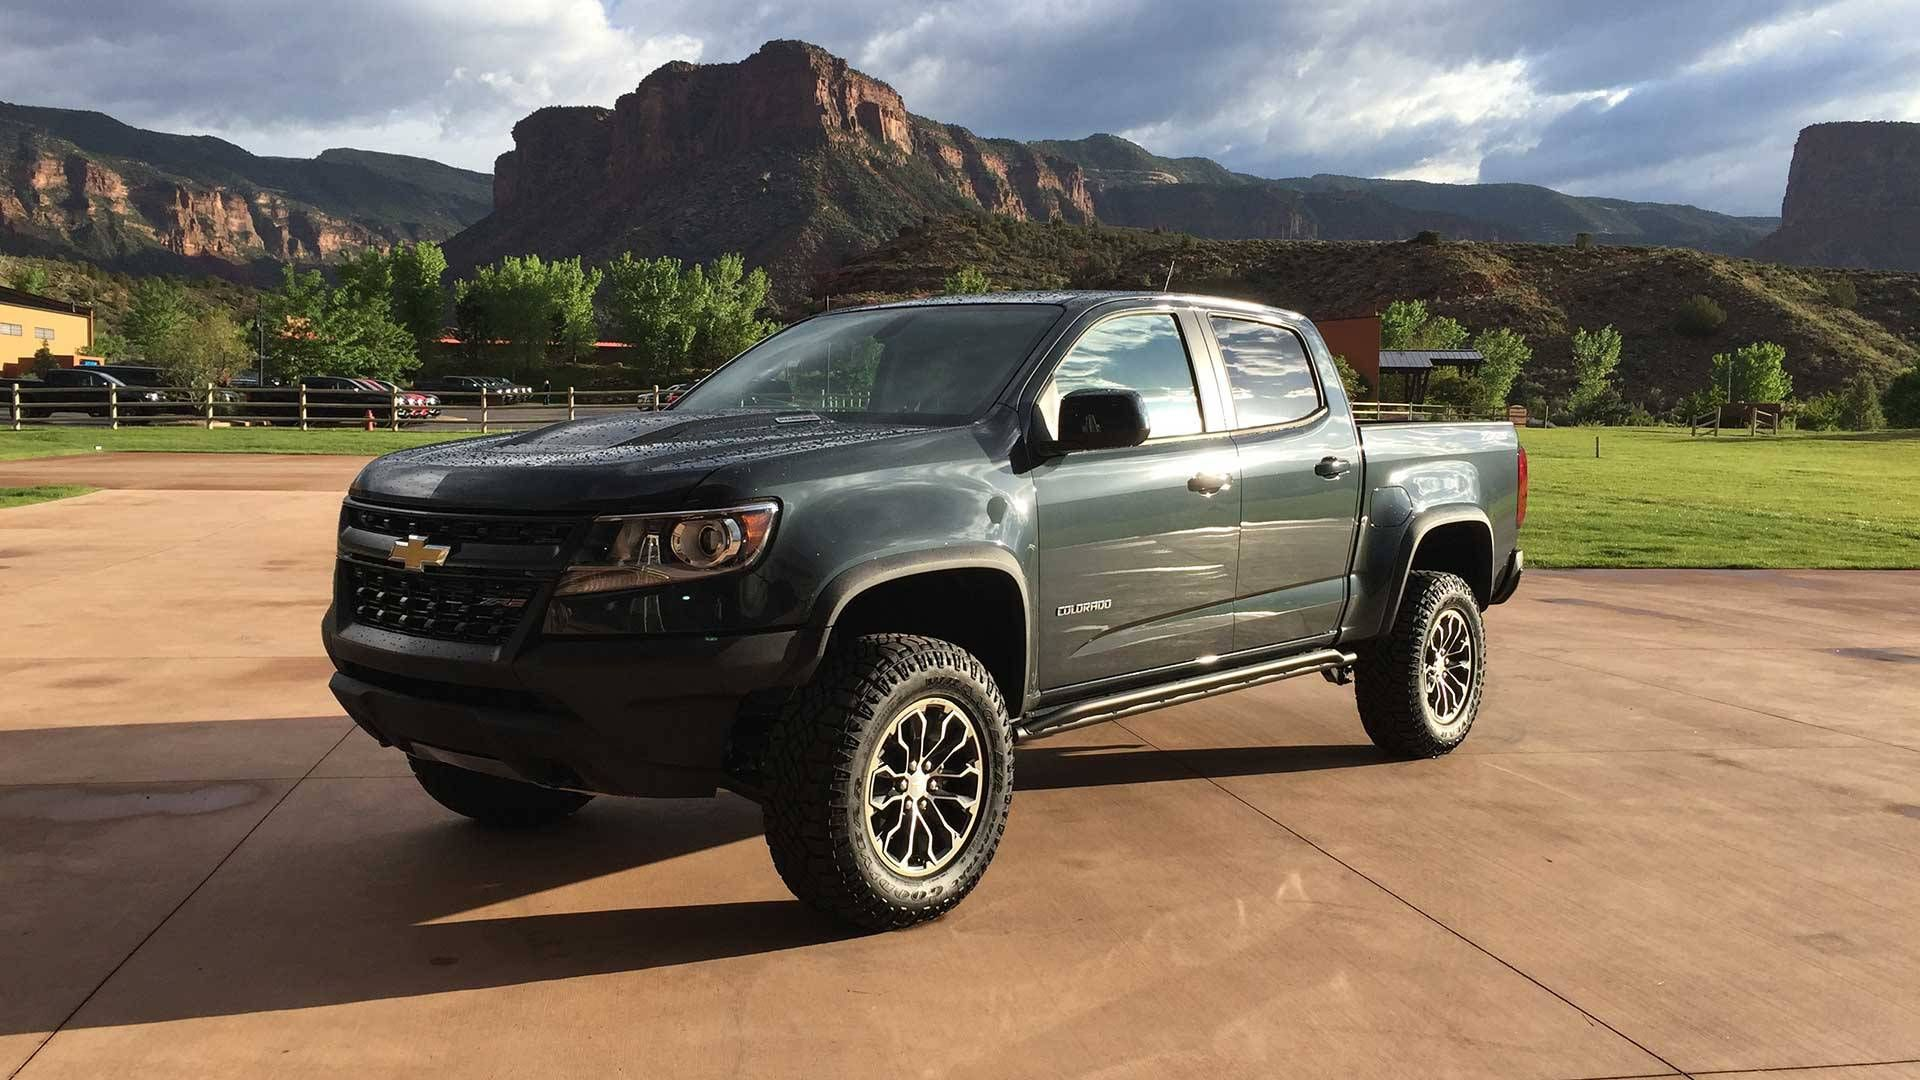 2017 Chevrolet Colorado Zr2 Review Finally A Right Sized Off Road Pickup Truck Warrior Chevrolet Colorado Chevy Colorado Chevrolet